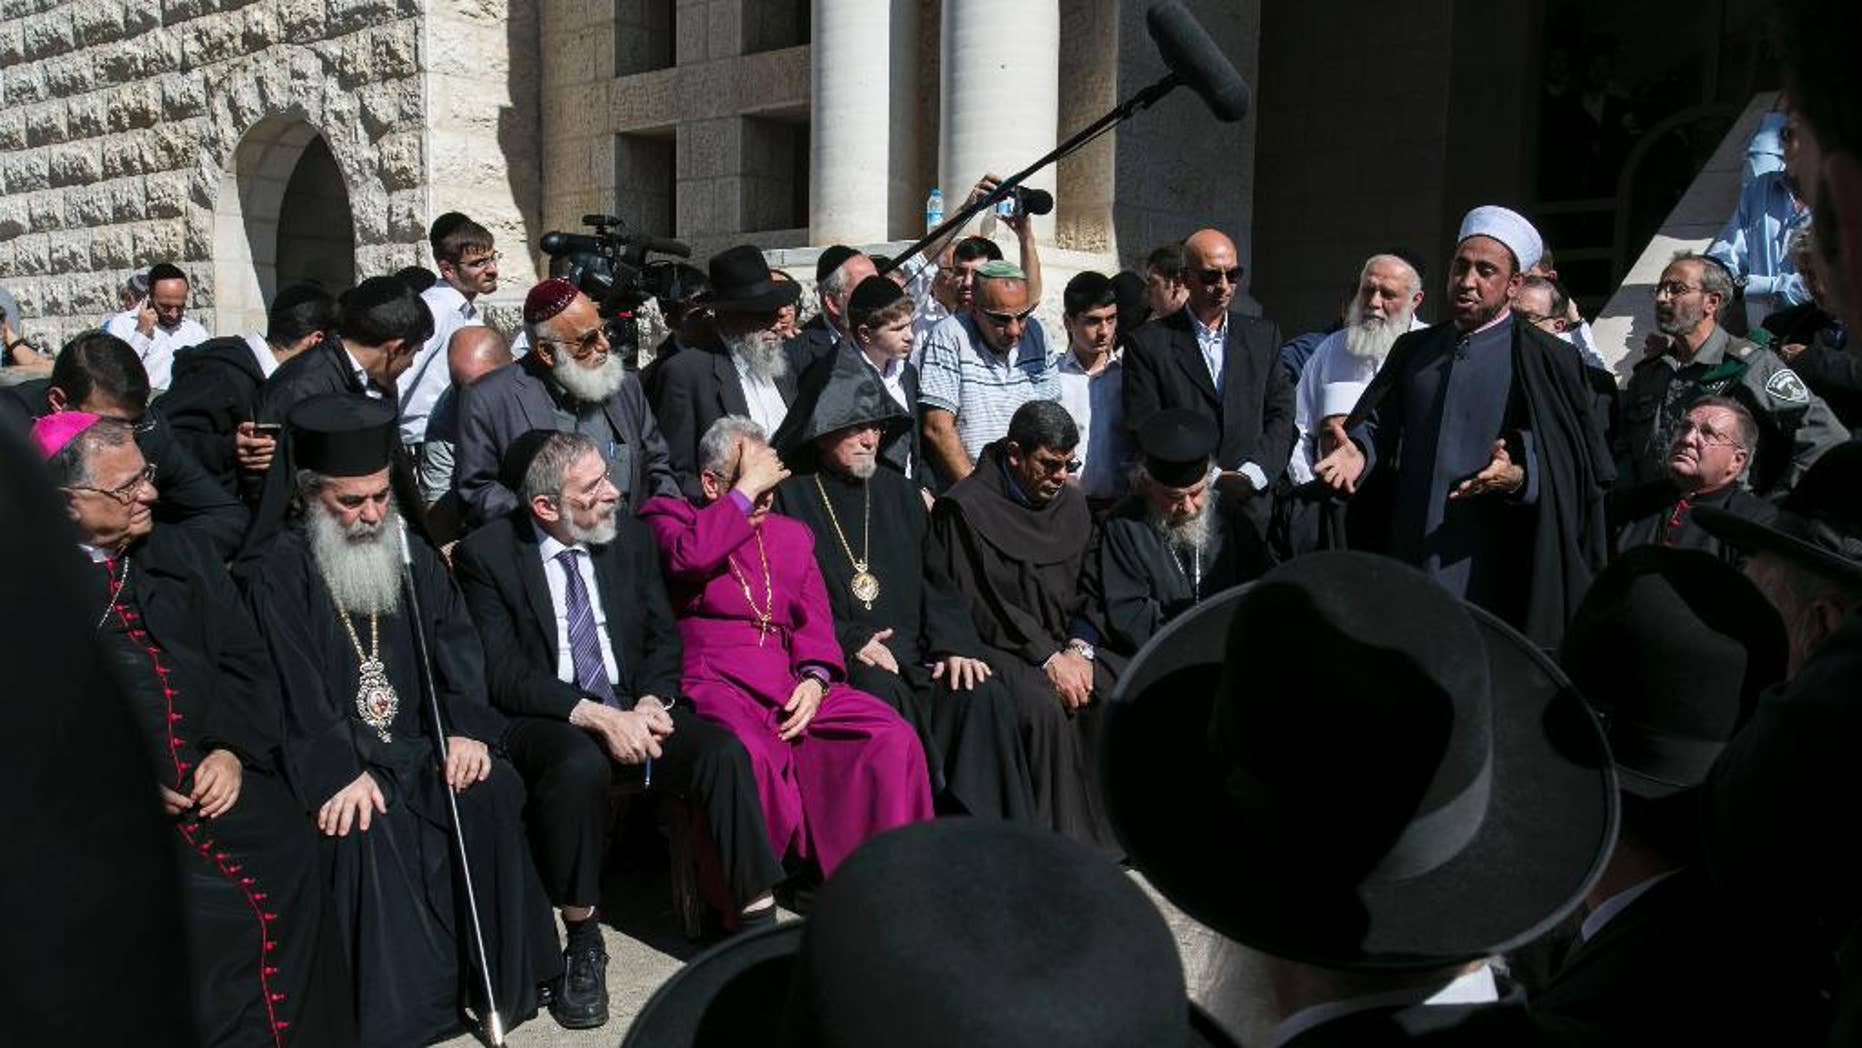 Nov. 19, 2014: Sheikh Samir Assi, the imam of the Al-Jazaar mosque in the northern Israeli city of Acre, addresses Christian, Muslim and Jewish clerics outside the synagogue, where on Tuesday two Palestinians killed five Israelis, in Jerusalem. (AP)